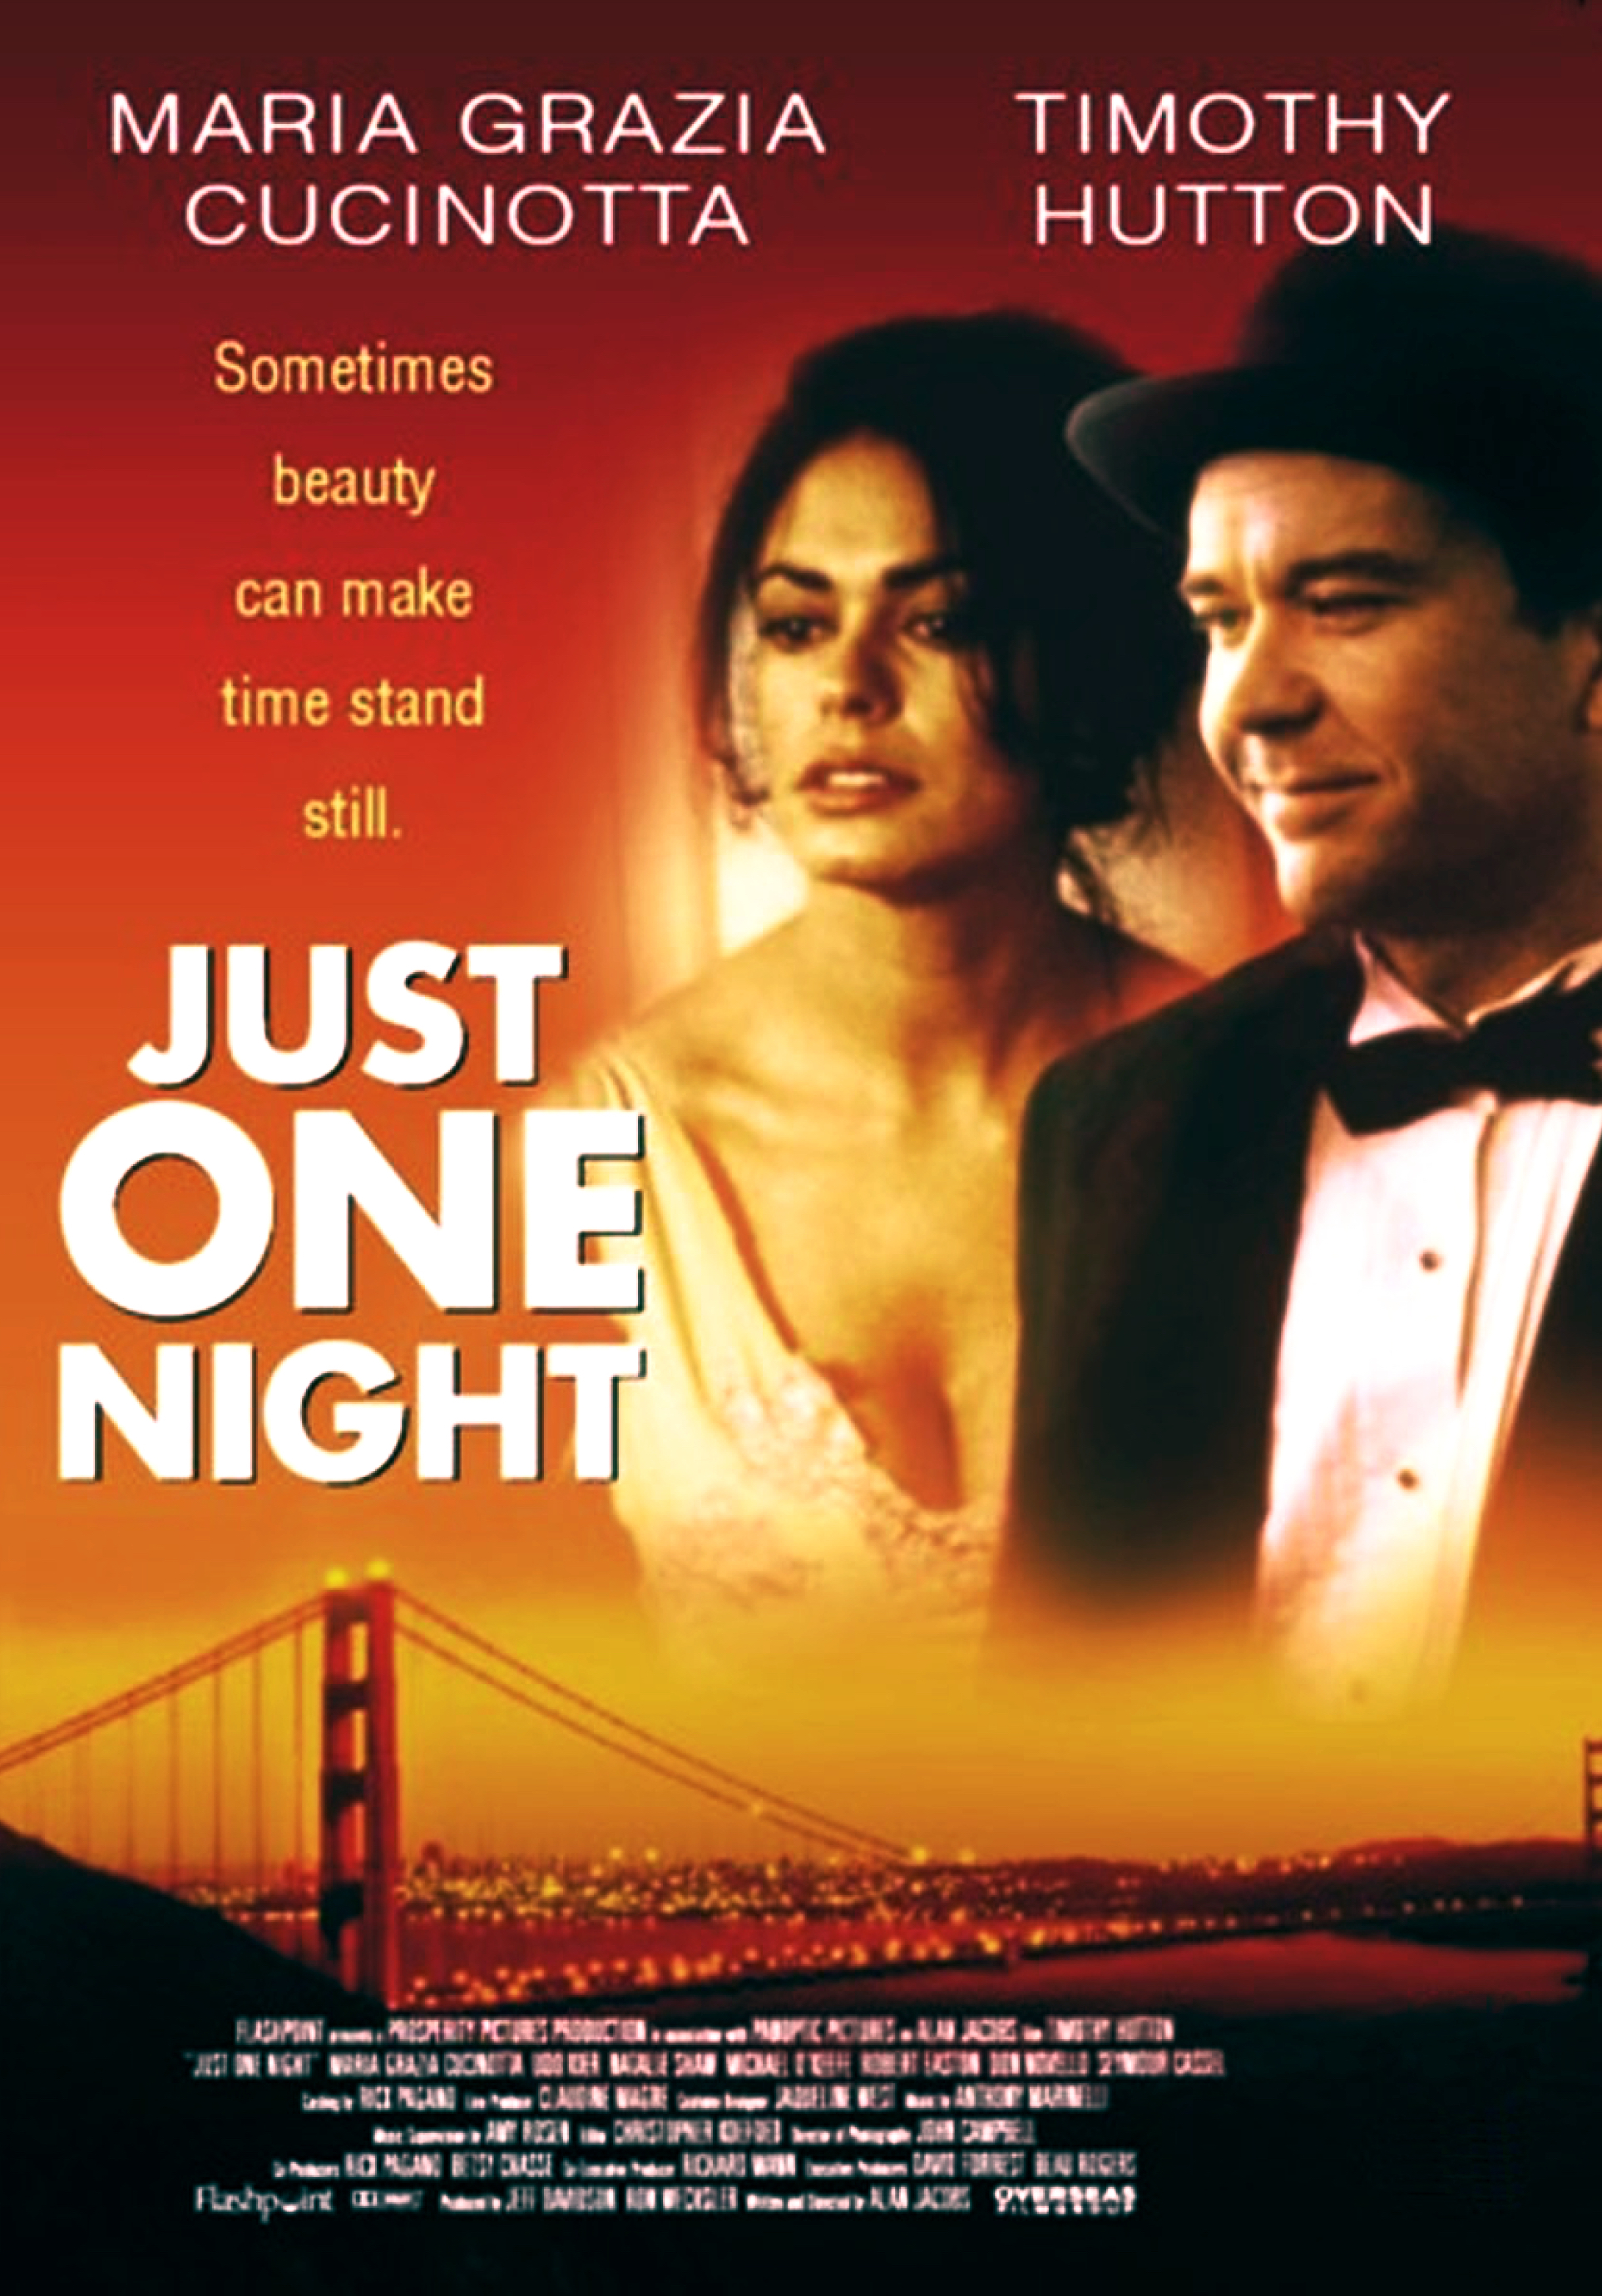 Just One Night - Score Catalog Artwork V1_Crop.jpg